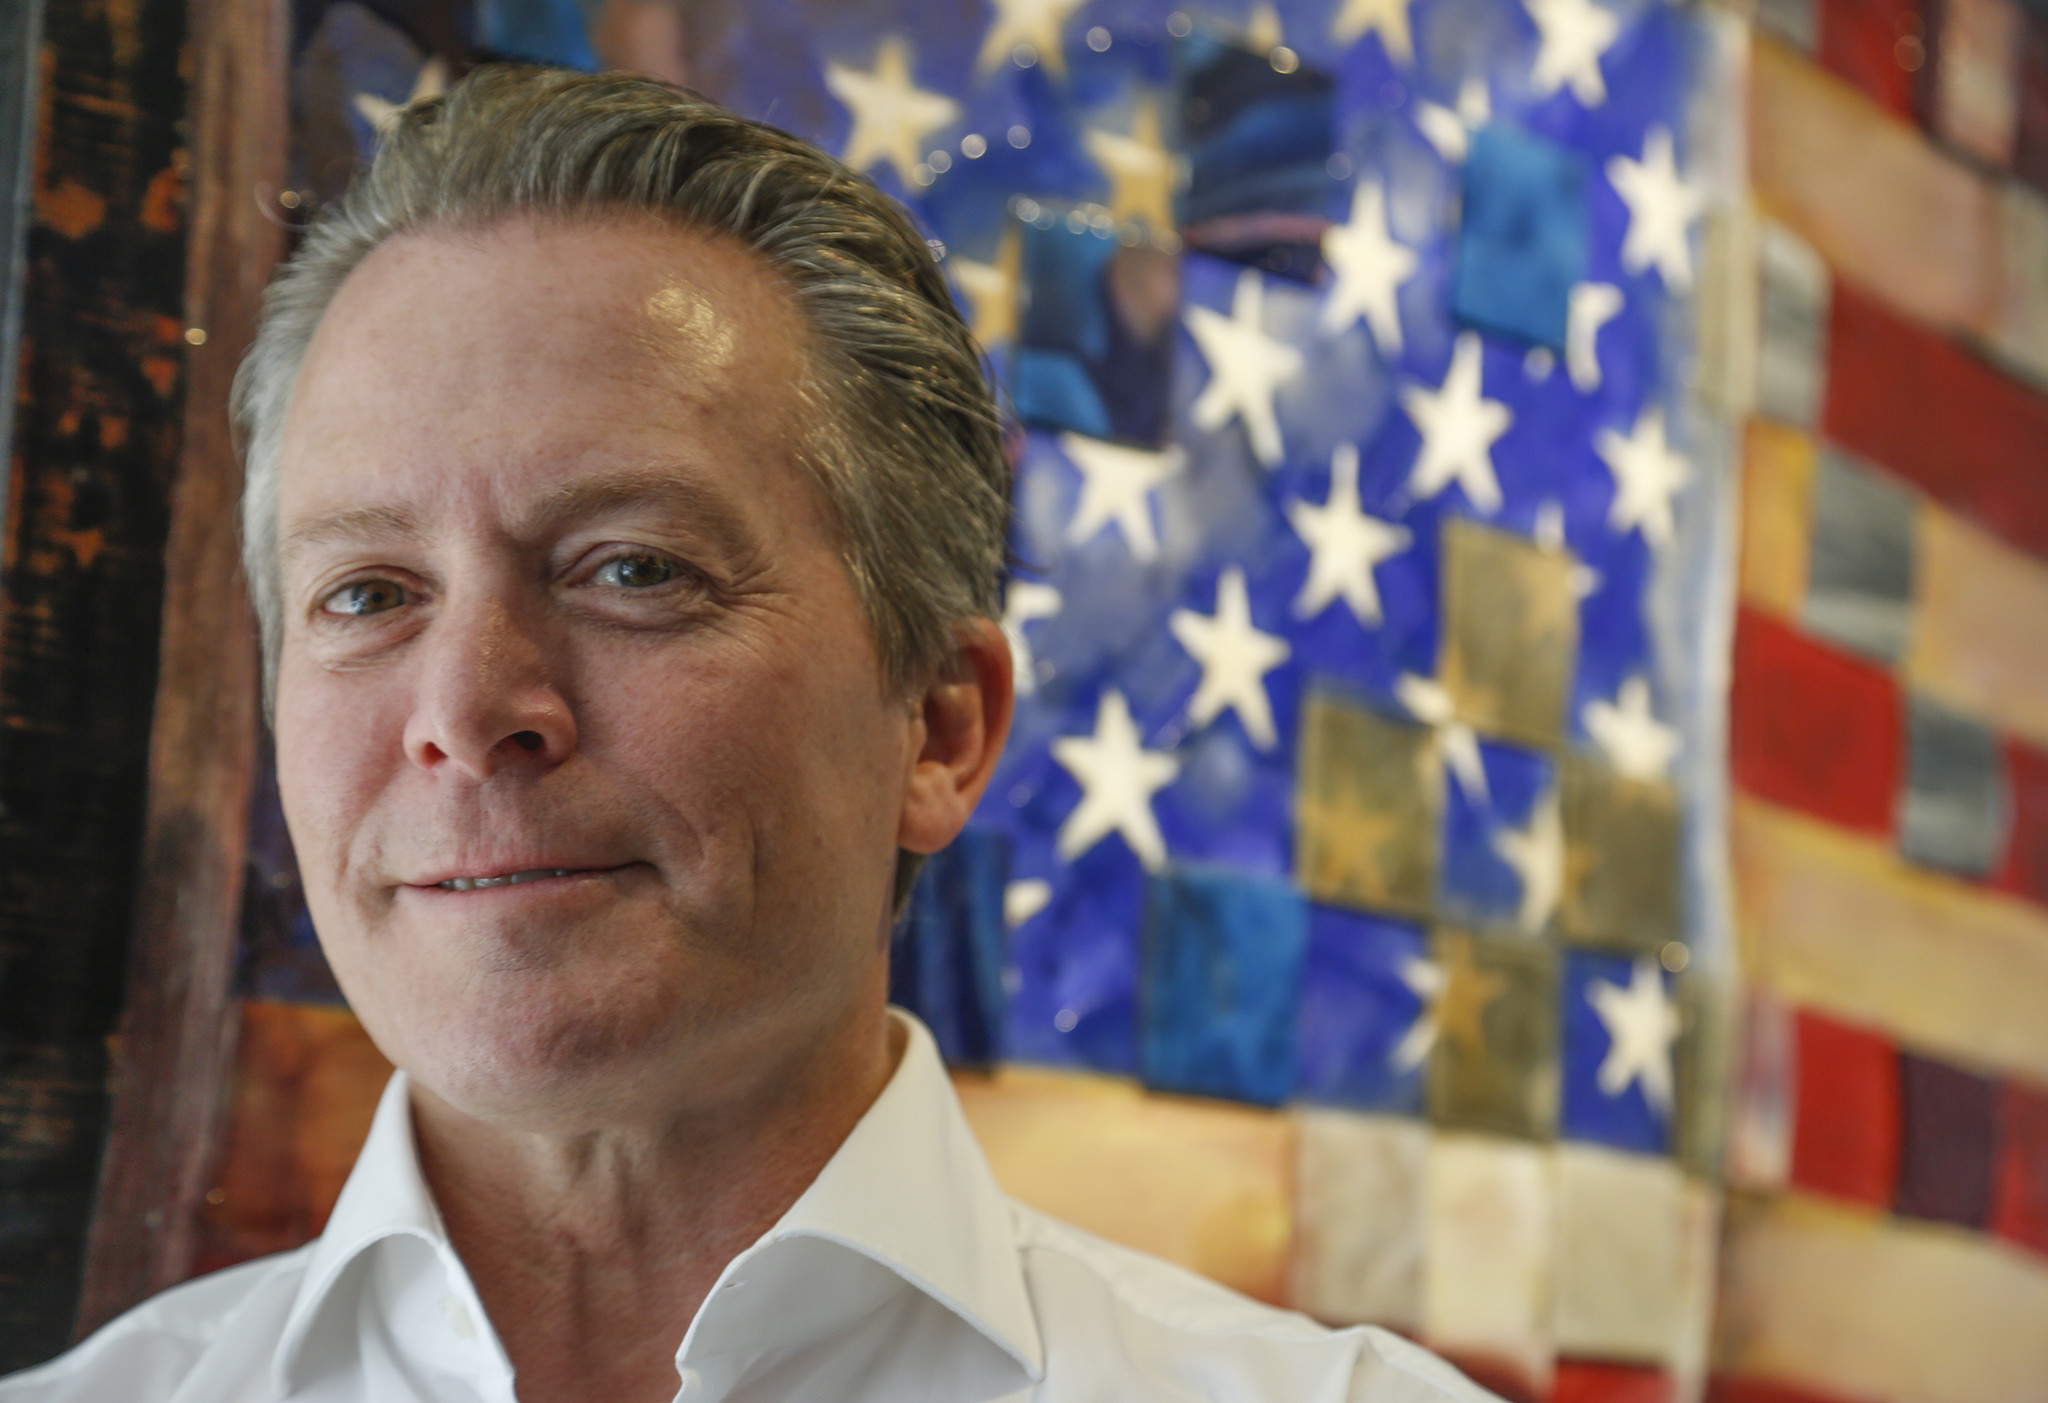 Former UC Irvine professor and stem cell scientist Hans Keirstead is announcing his candidacy for the 48th Congressional District. (Mark Boster / Los Angeles Times)